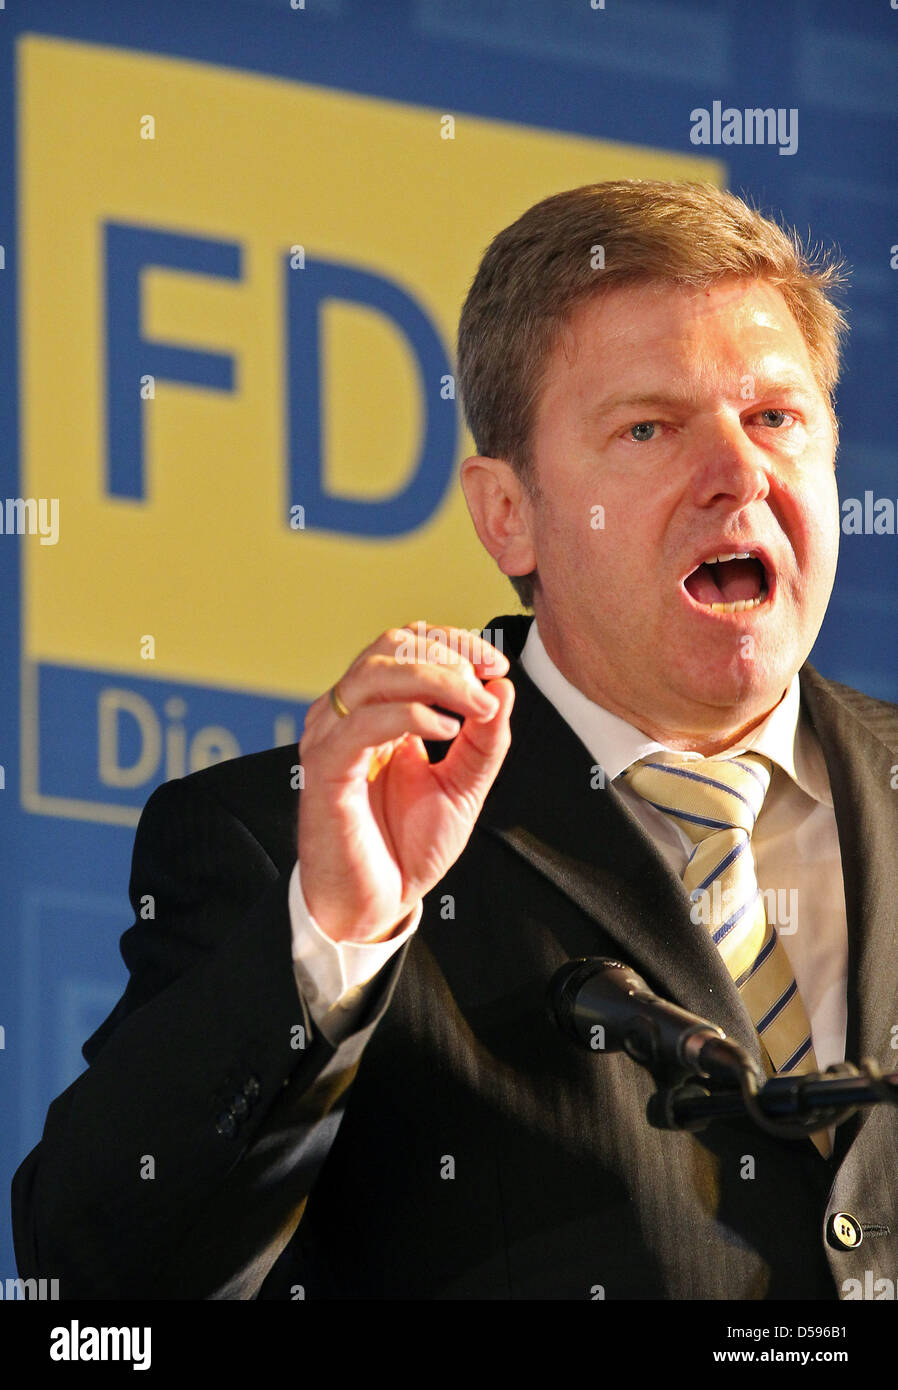 Whip at Saxony-Anhalt's FDP, Veit Wolpert, talks at the state delegates meeting of the Saxony-Anhalt FDP in Zerbst, Stock Photo